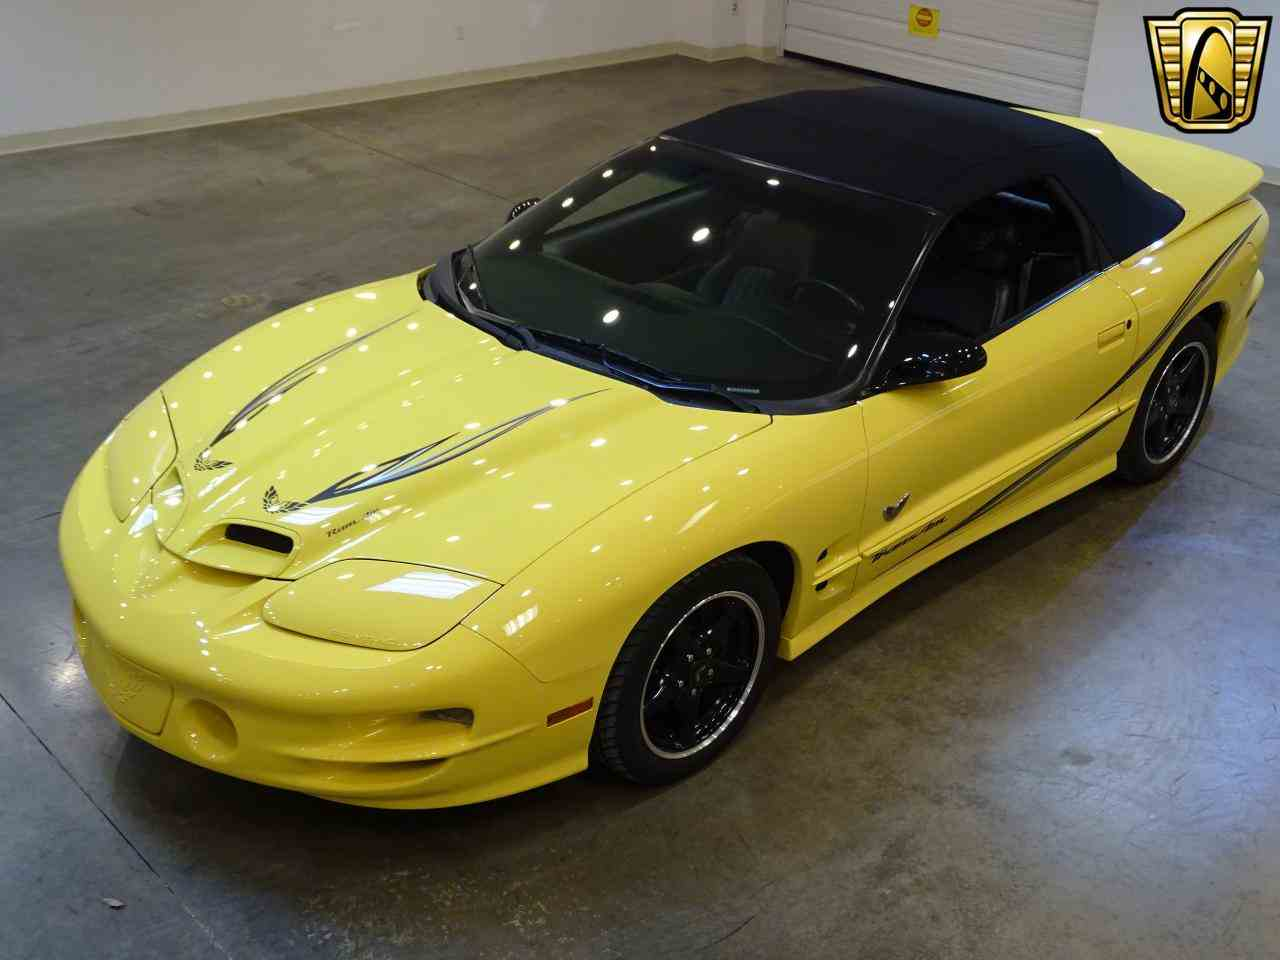 Large Picture of '02 Pontiac Firebird located in O'Fallon Illinois - $32,995.00 - KE64